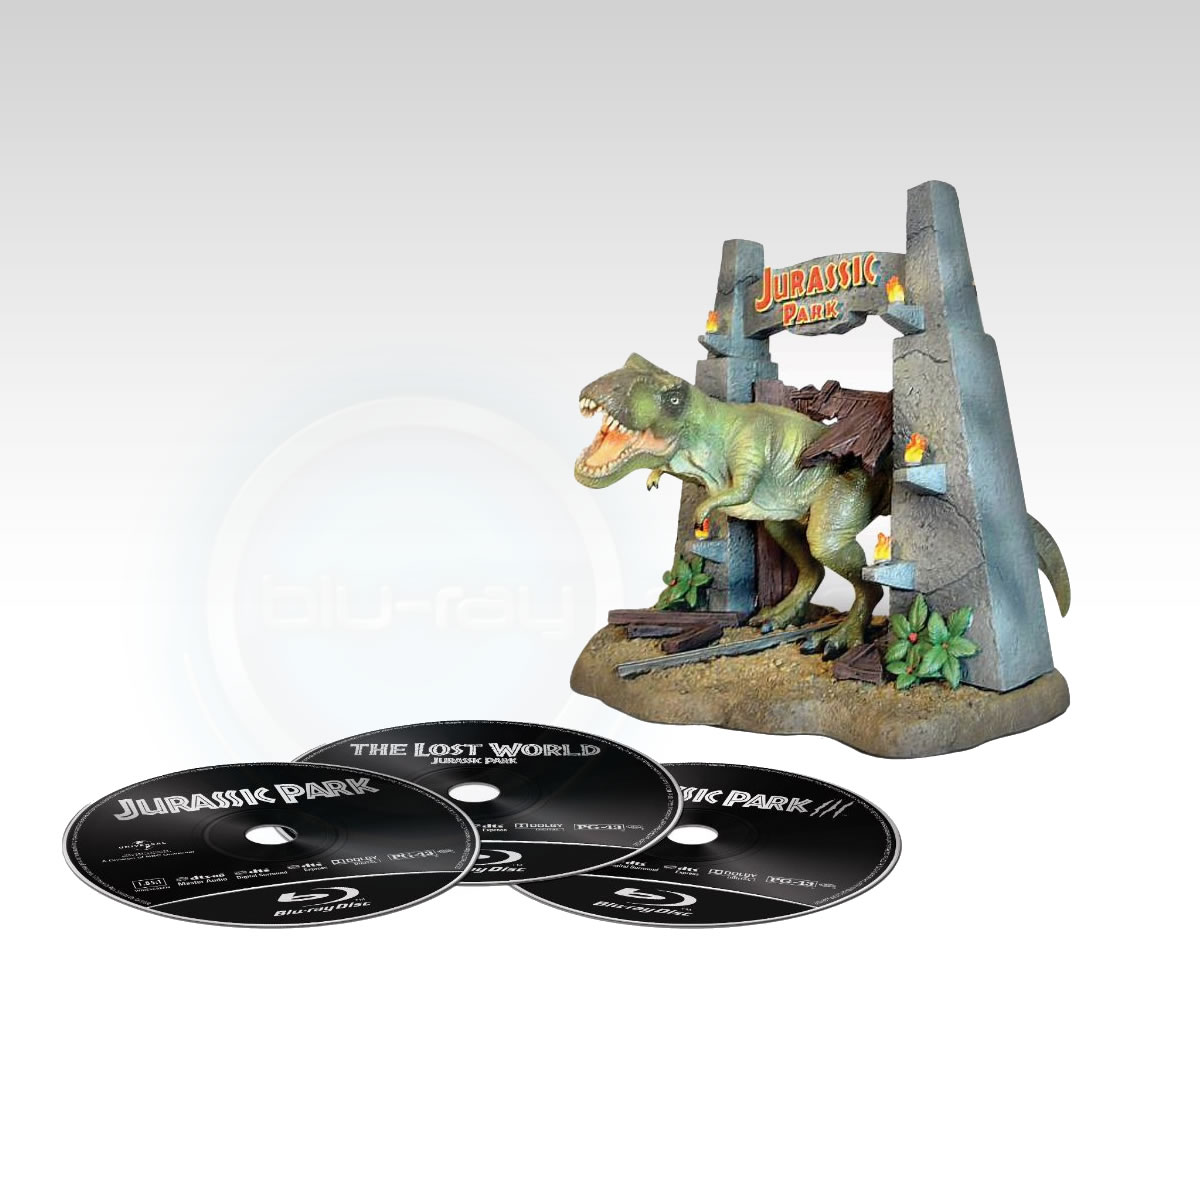 JURASSIC PARK TRILOGY - BOXSET WITH FIGURINE T-REX Limited Collector's Edition [��������� �� ���������� ����������] (3 BLU-RAYs)